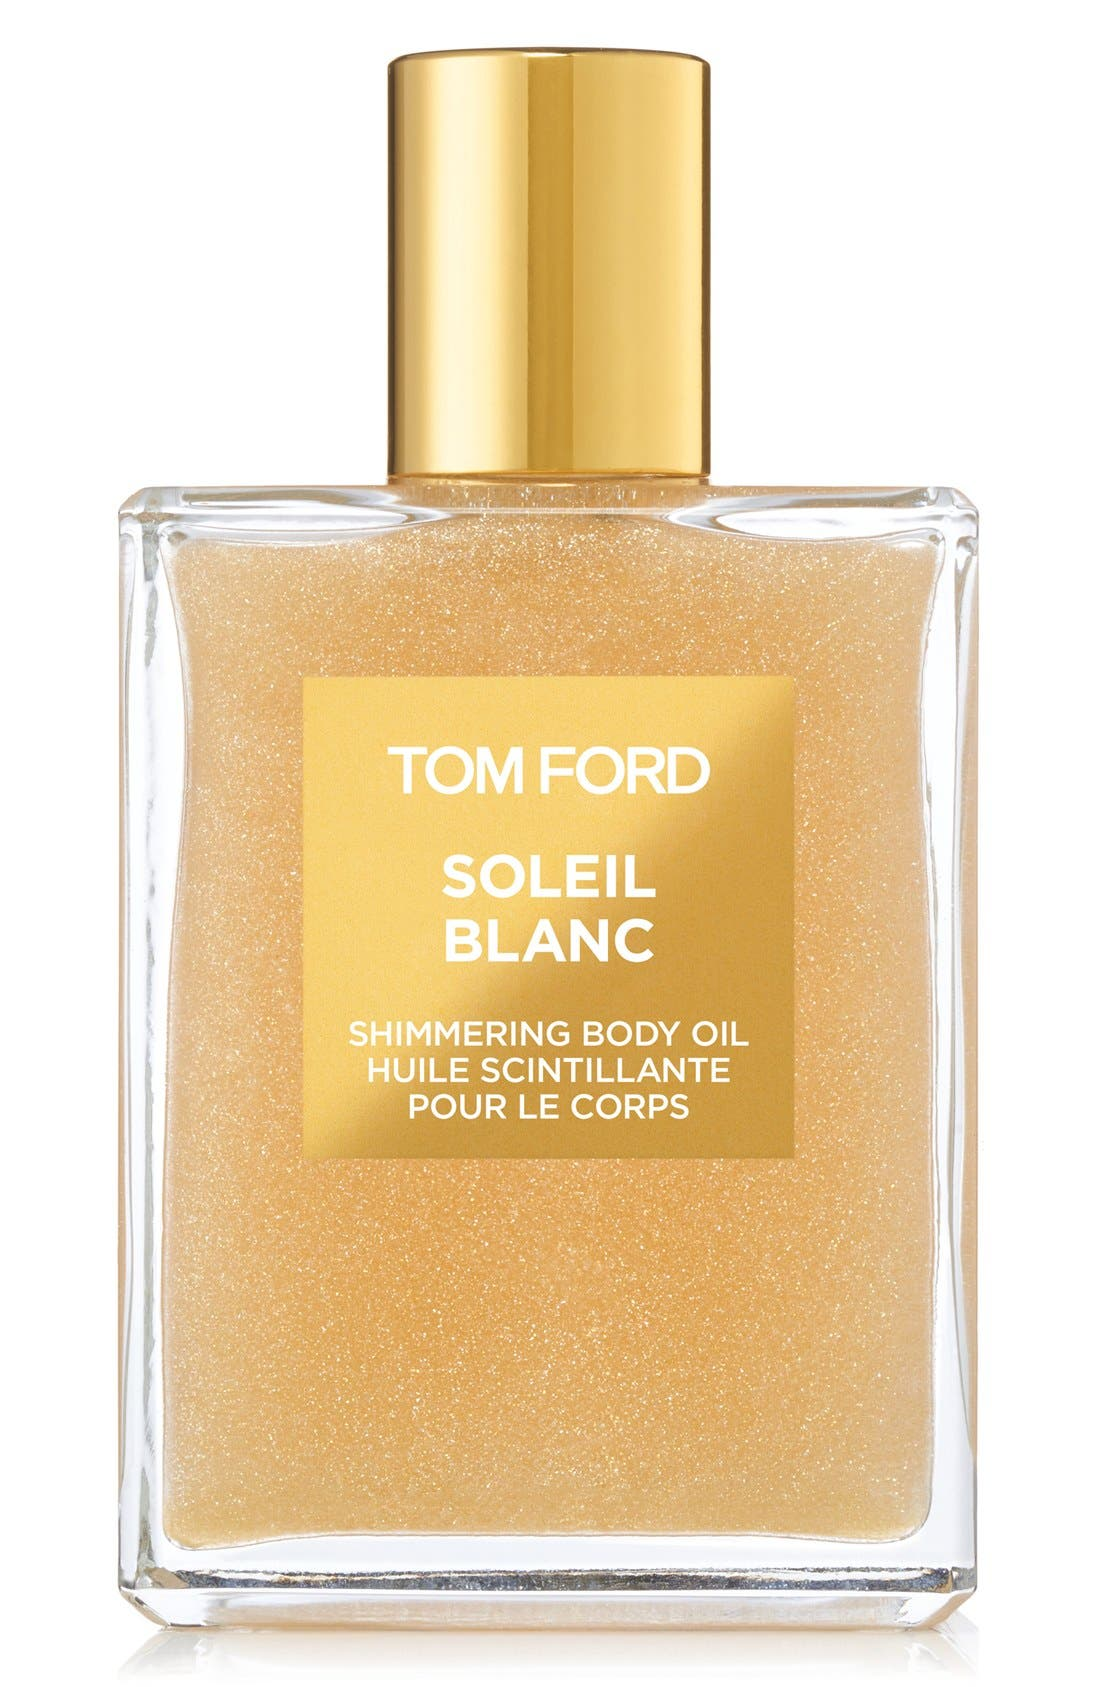 Tom Ford 'Soleil Blanc' Shimmering Body Oil